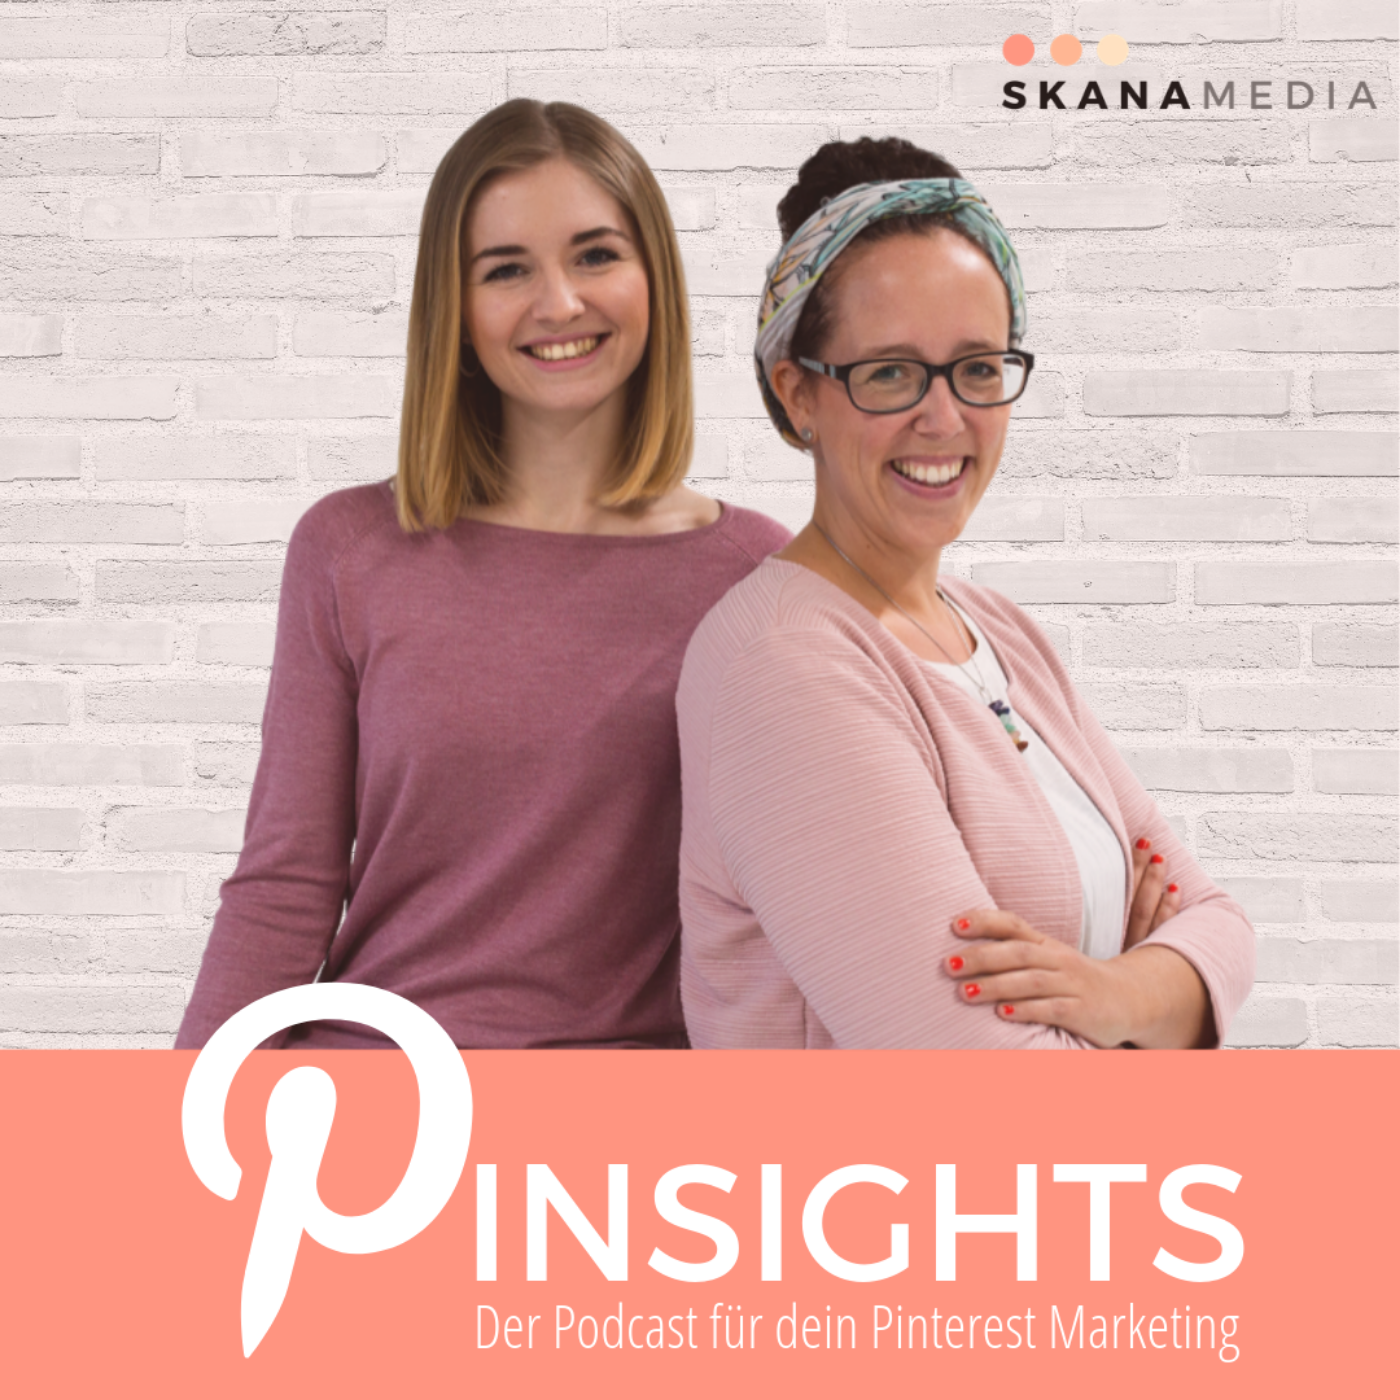 Pinsights - Der Podcast für dein Pinterest Marketing show art